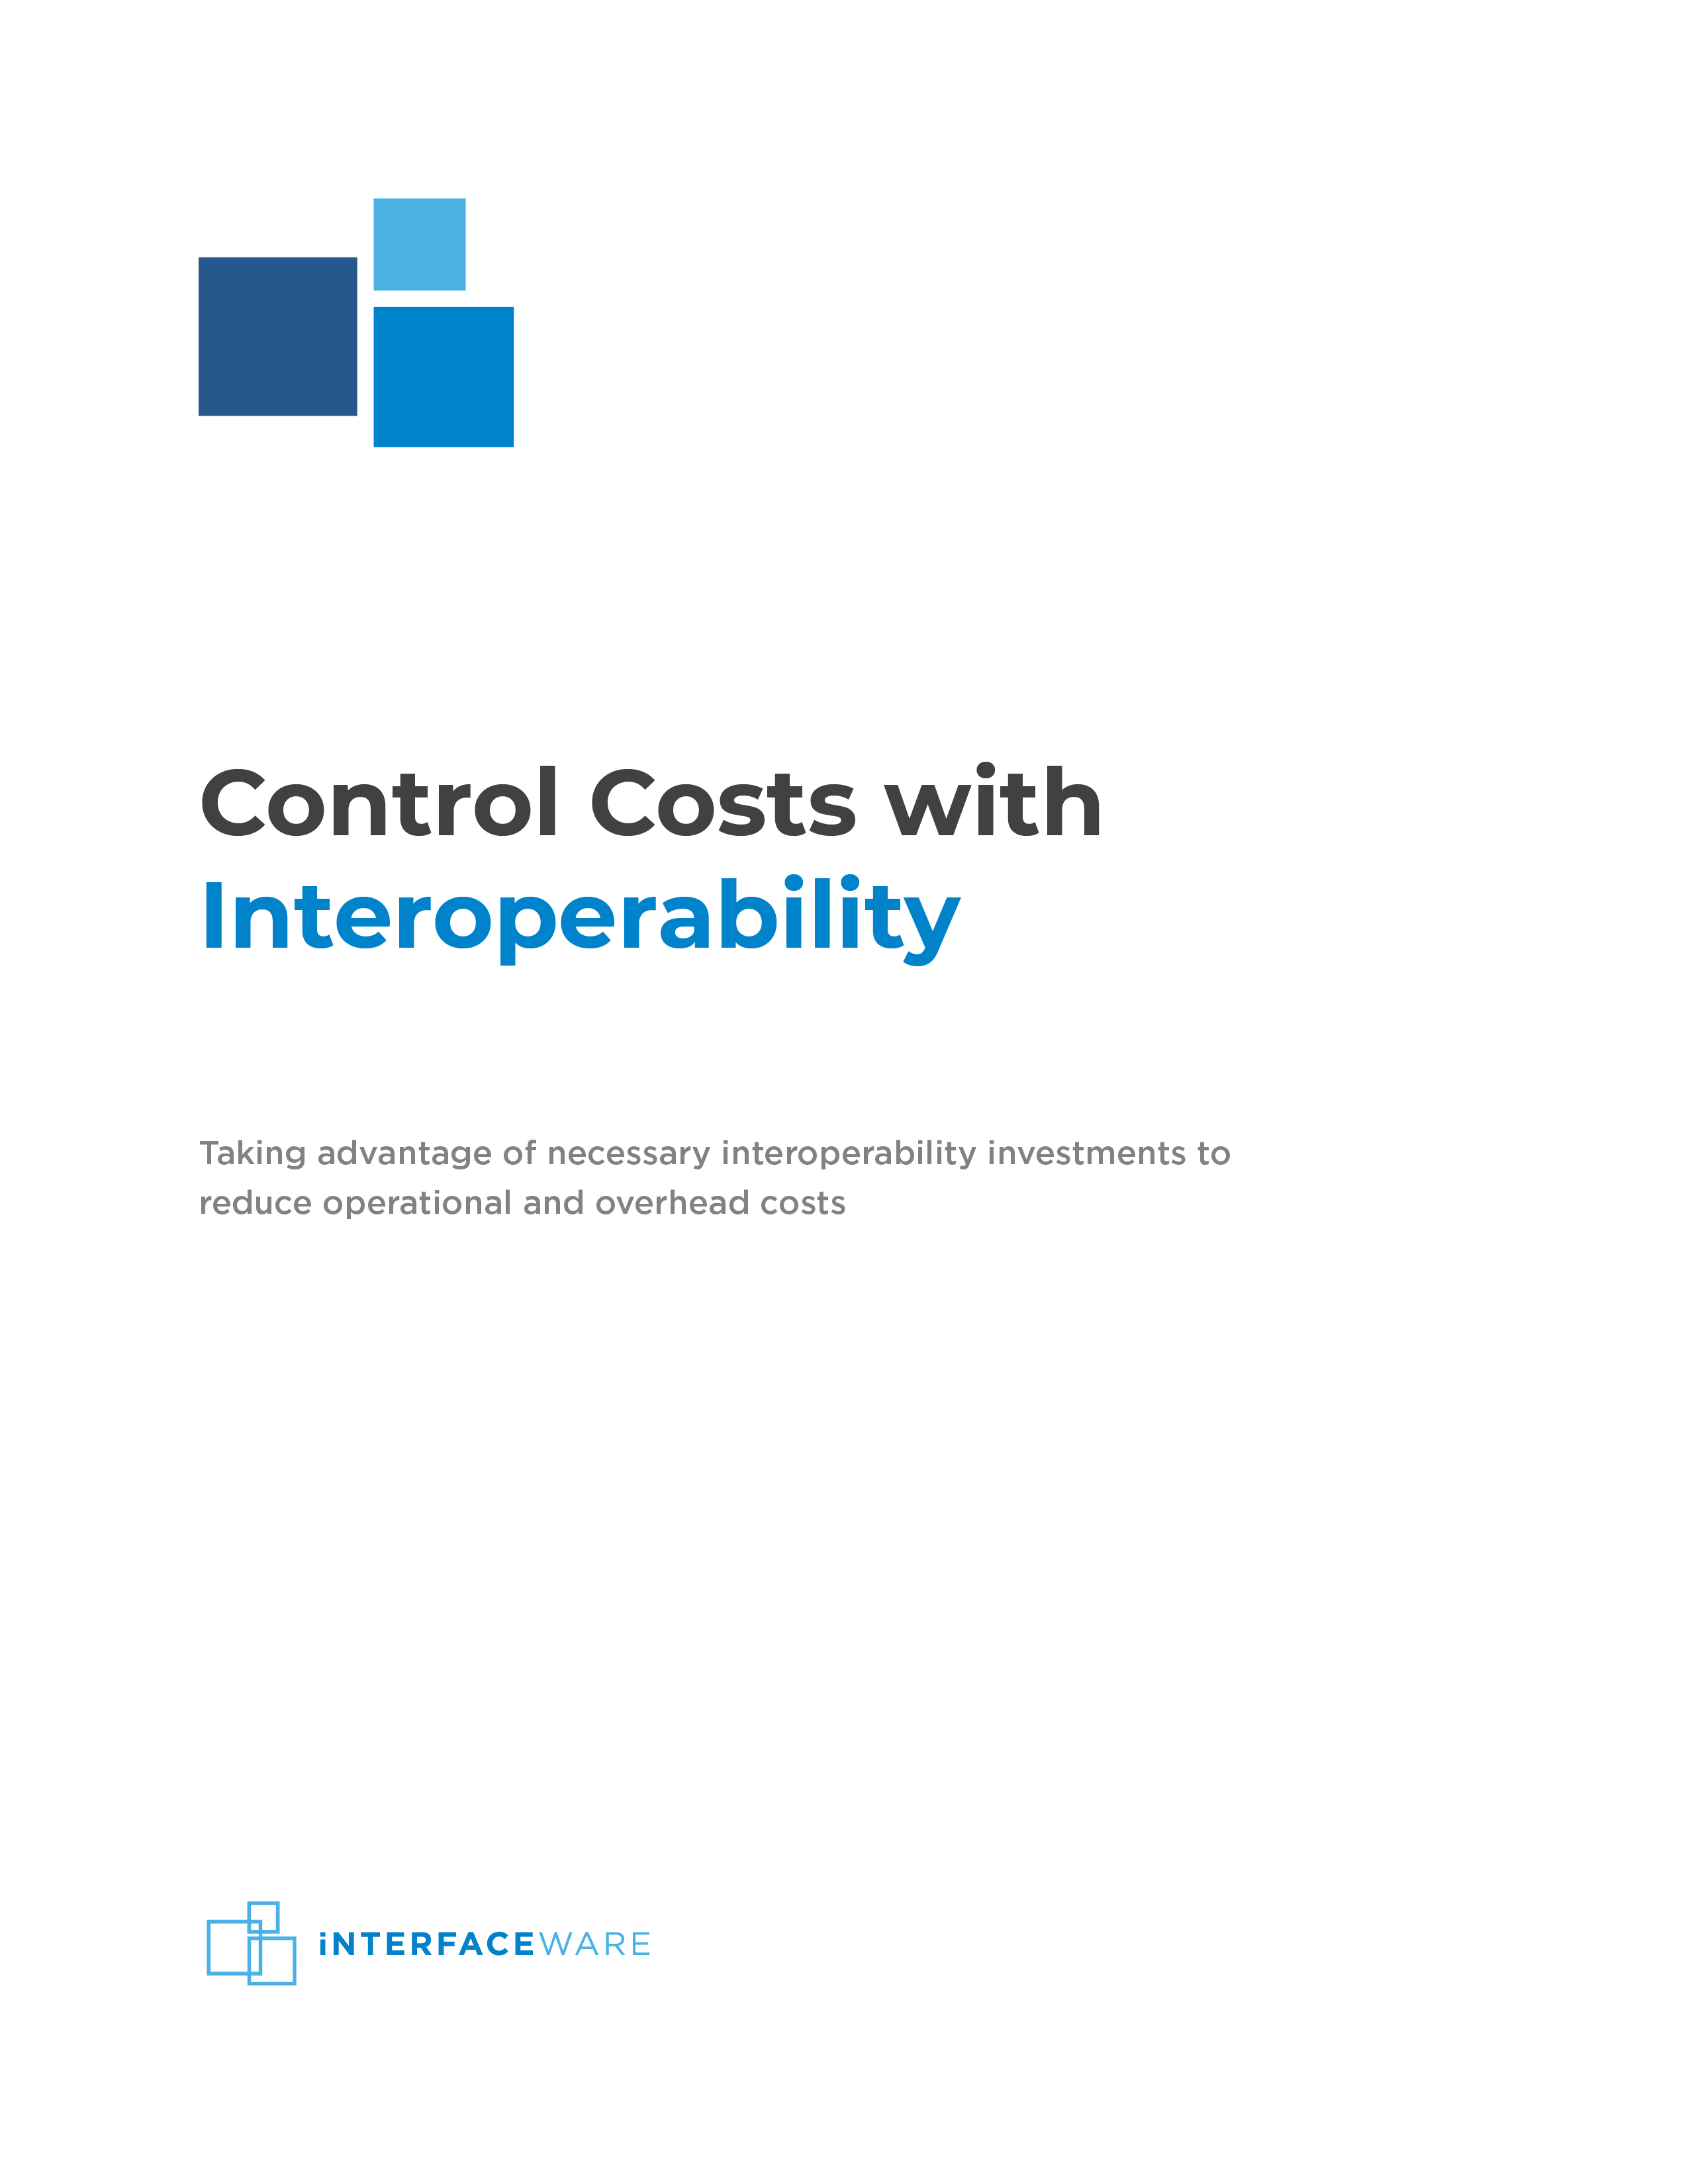 Control Costs with Interoperability